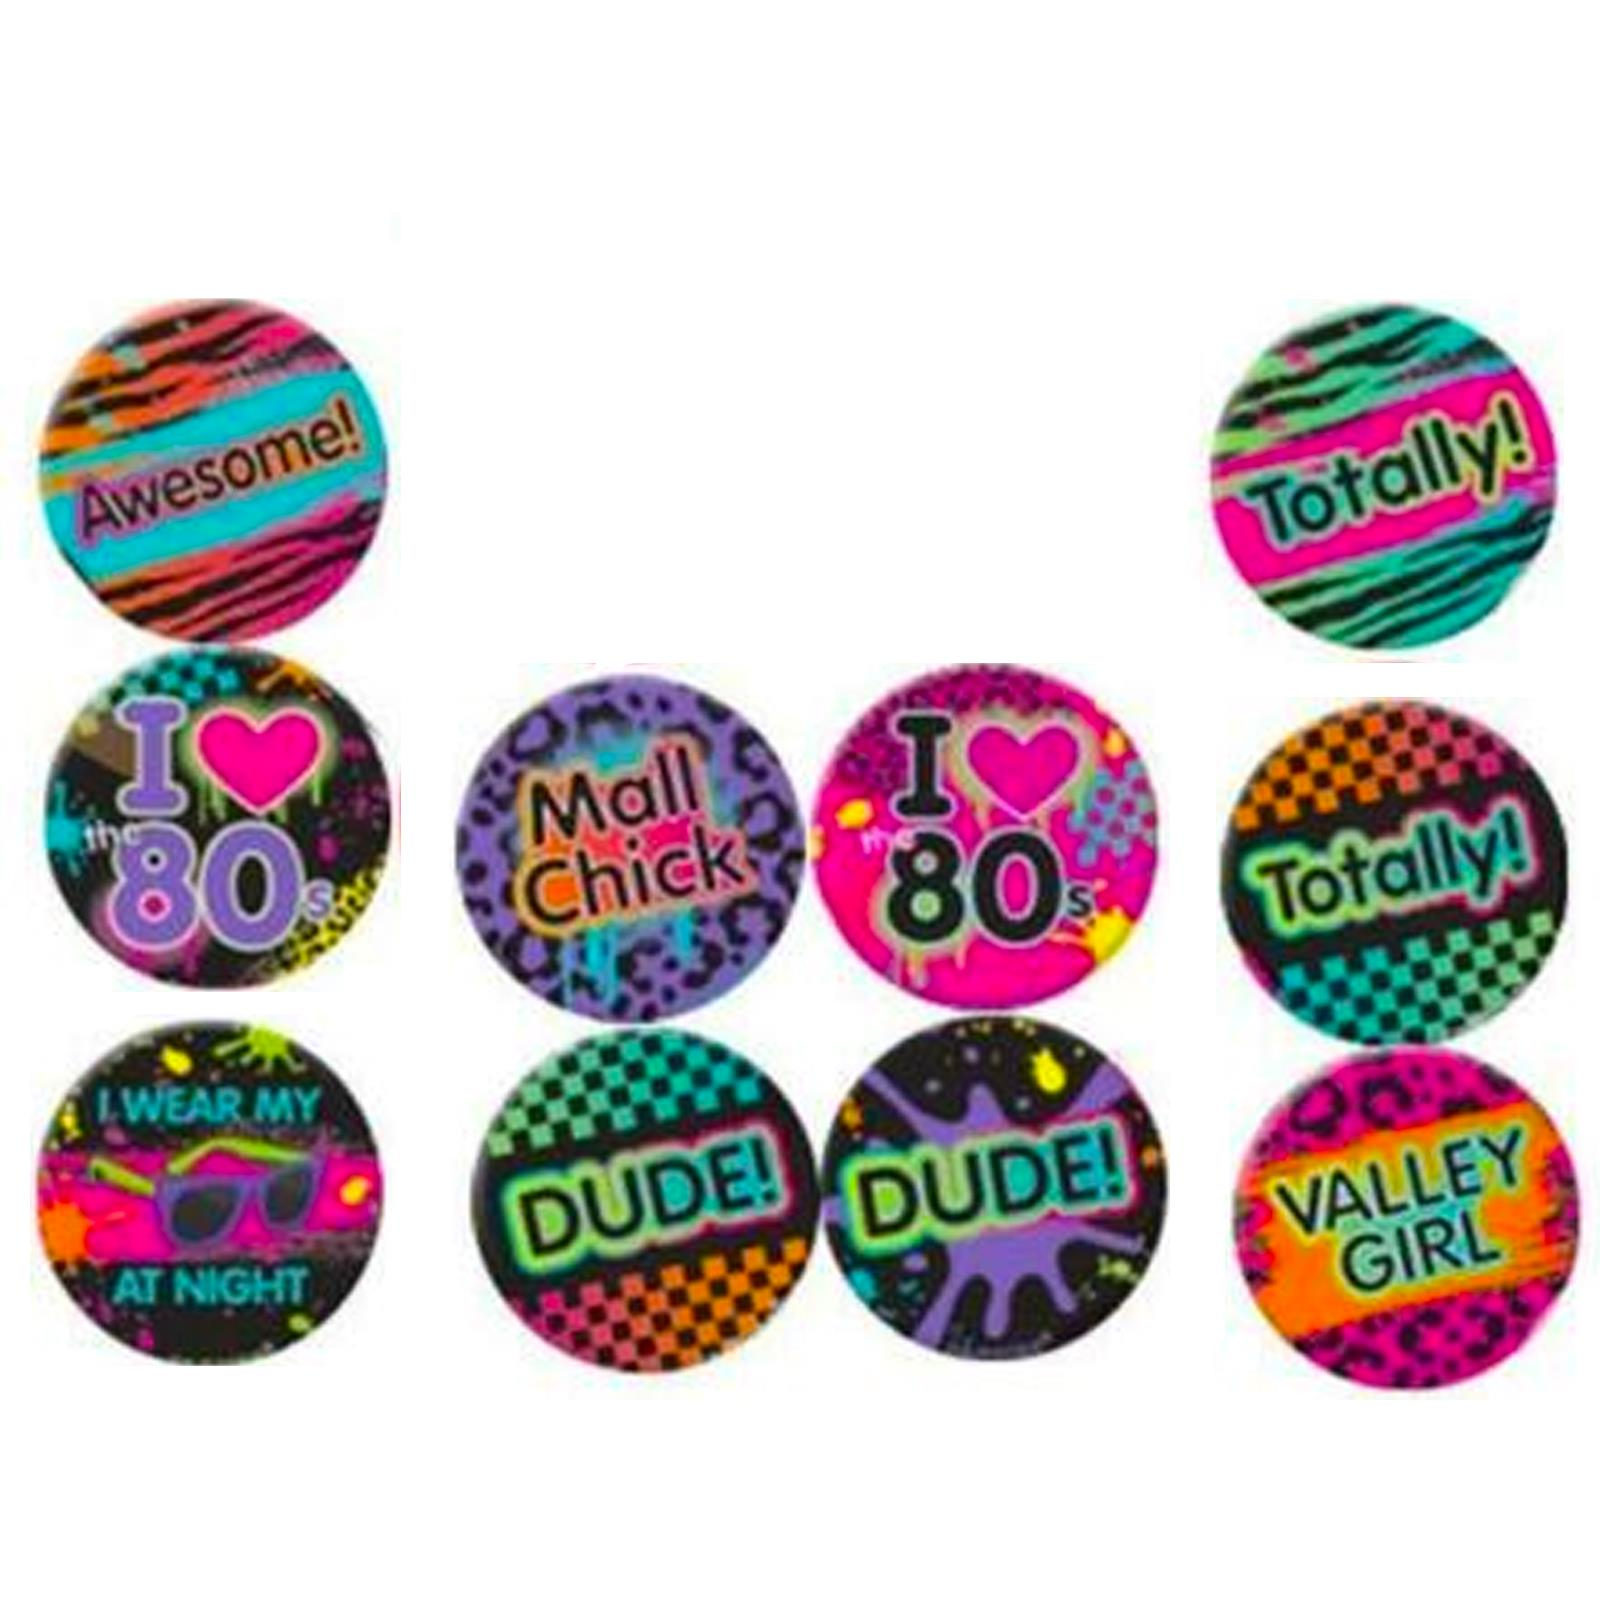 10 x 1980 1980/'s 80/'s Disco Birthday Party Assorted Button Badges